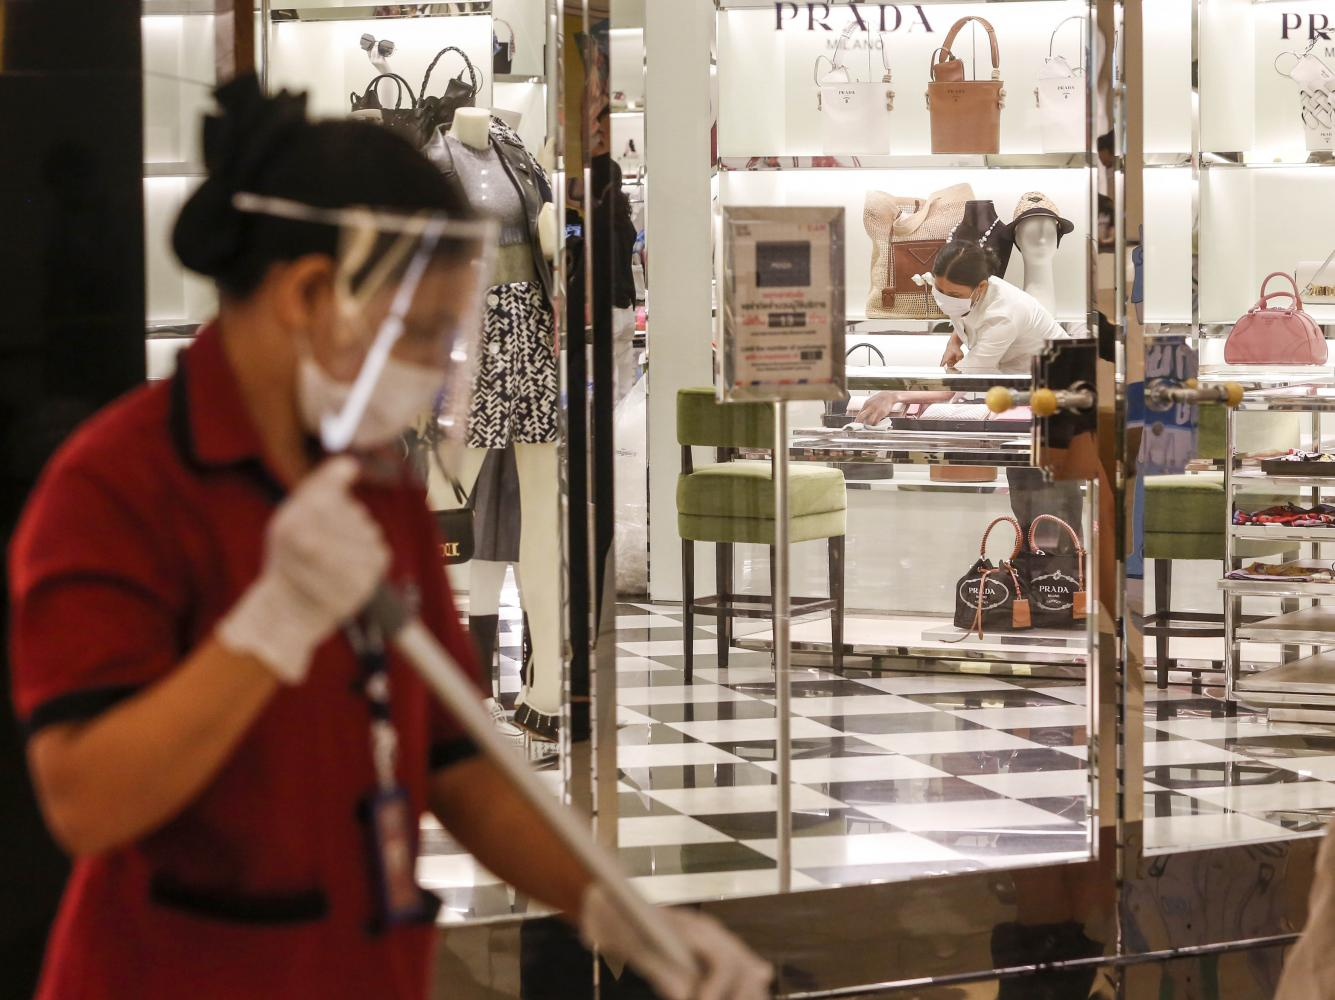 The Prada store at Siam Paragon prepares to reopen after a long lockdown.